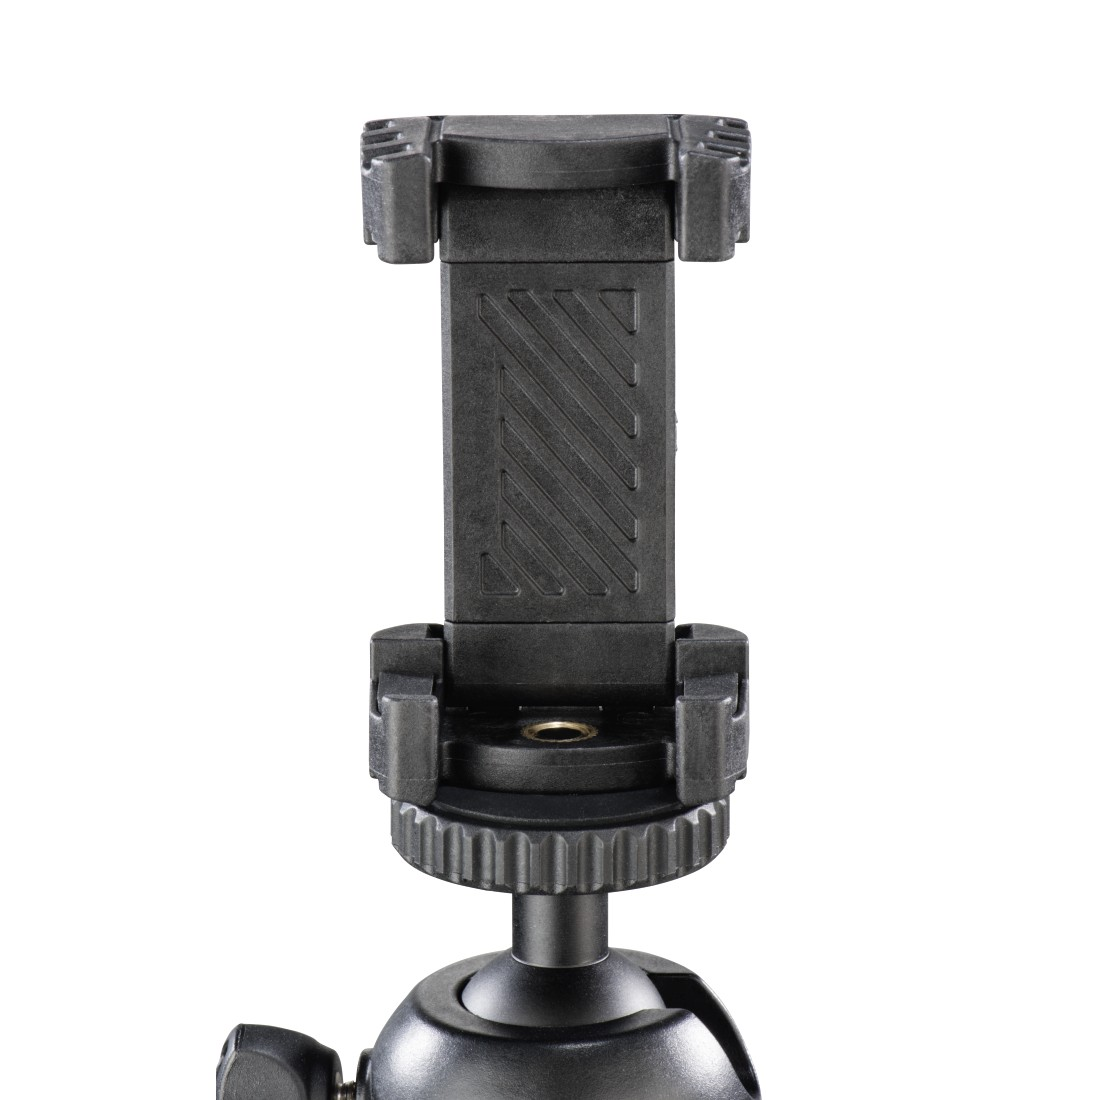 "dex7 High-Res Detail 7 - Hama, ""Traveller Pro"" Tripod for Smartphones, GoPros, Photo Cameras, 106 - 2D"